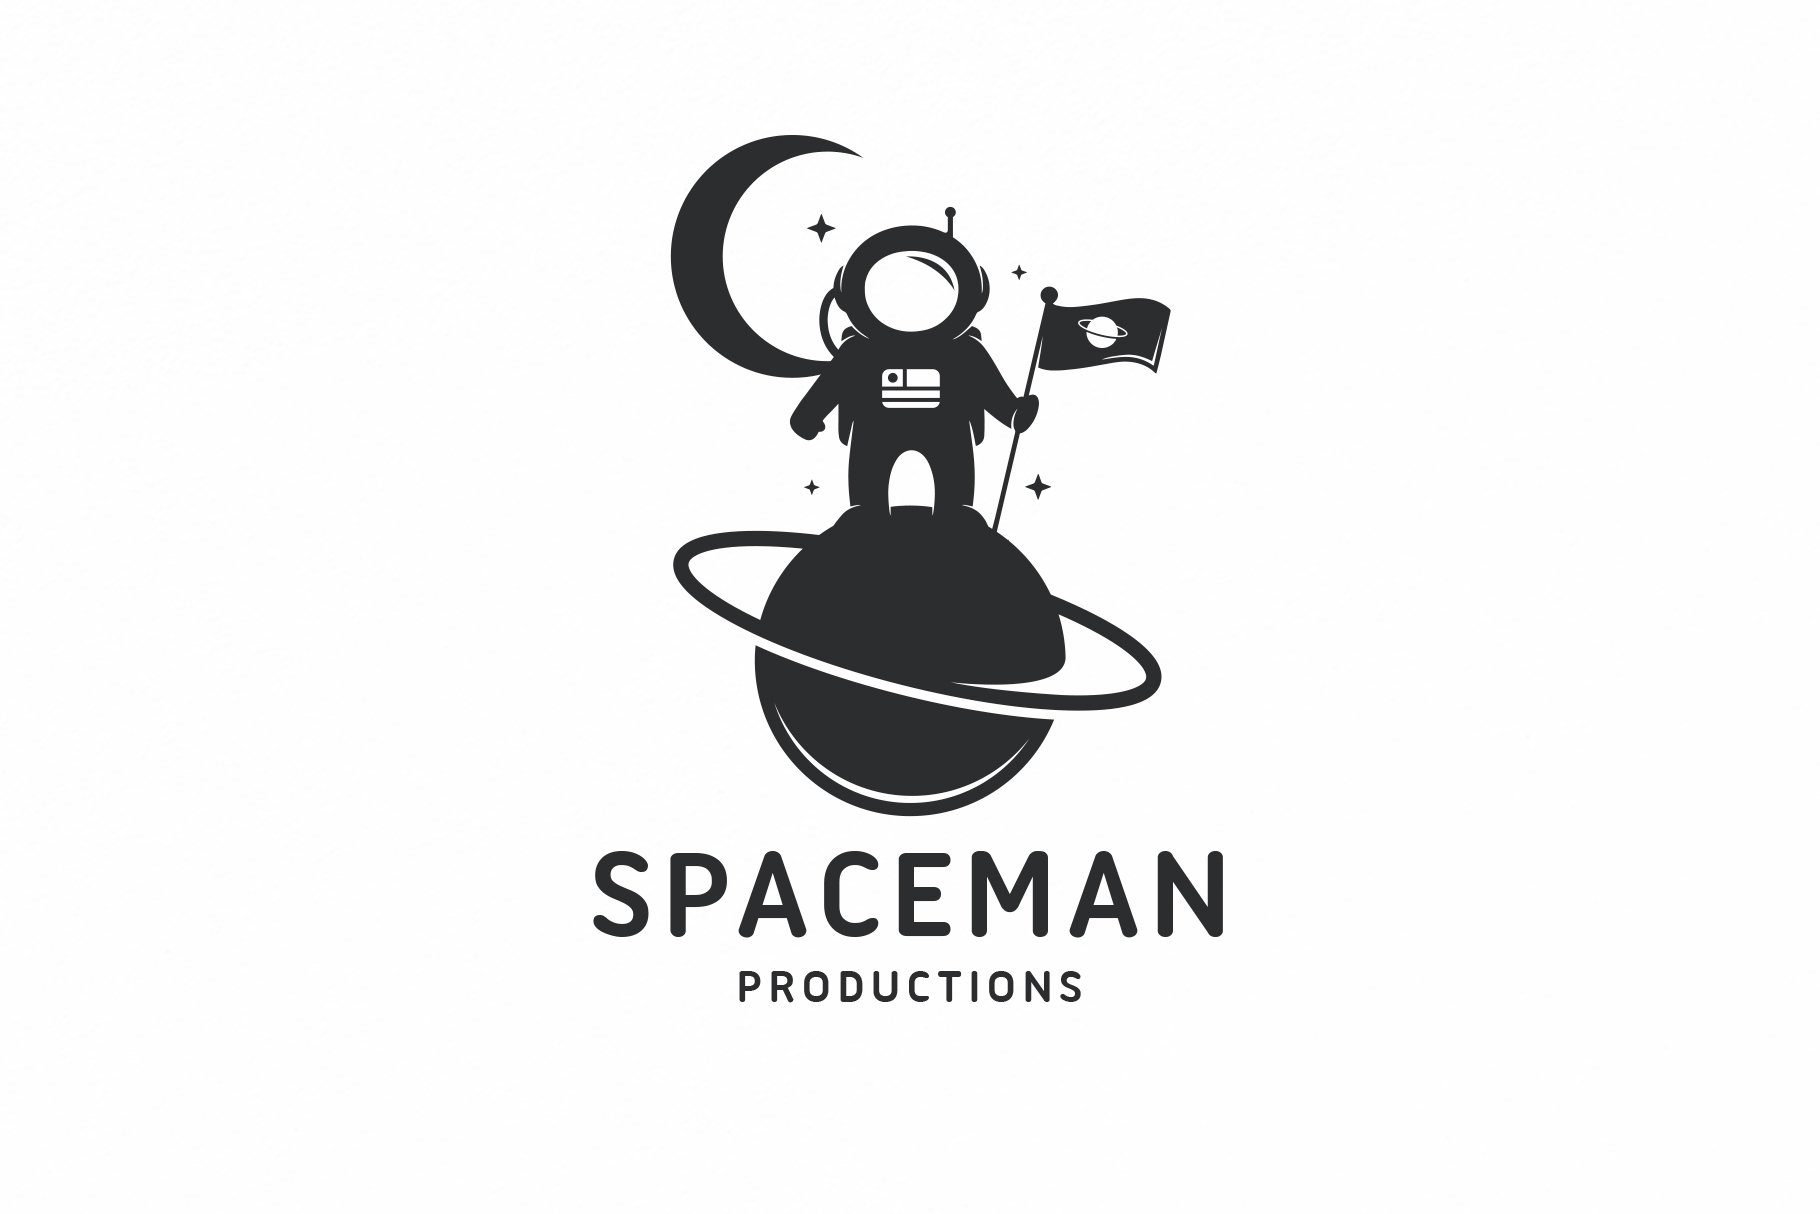 Download Free Astronaut Planet Logo Template Graphic By Vectorwithin for Cricut Explore, Silhouette and other cutting machines.